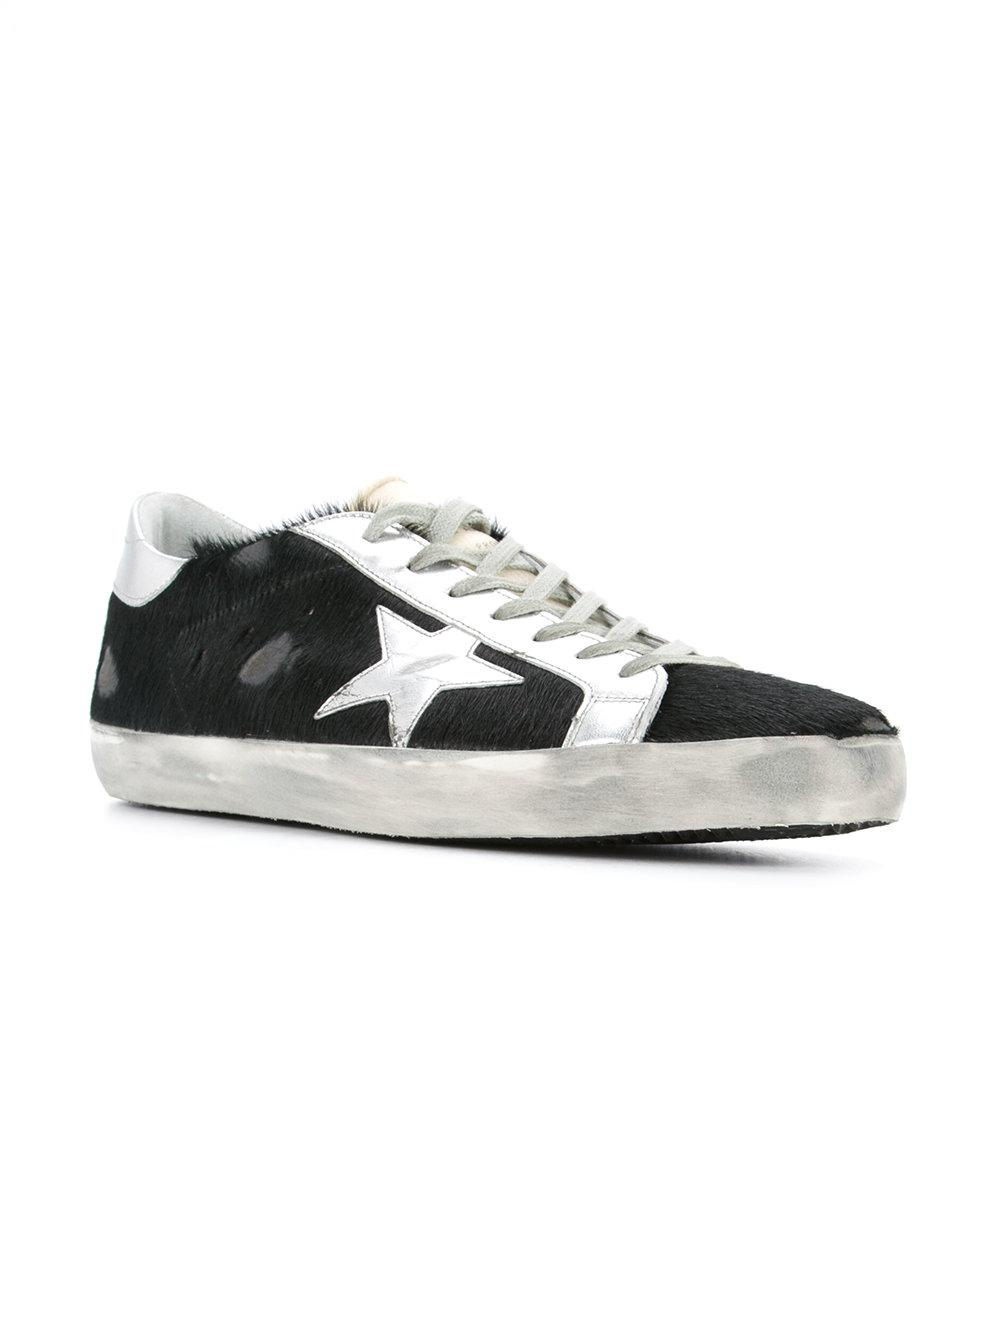 2b14d1c9c7726 Golden Goose Deluxe Brand Superstar Archive Sneakers in Black for Men - Lyst